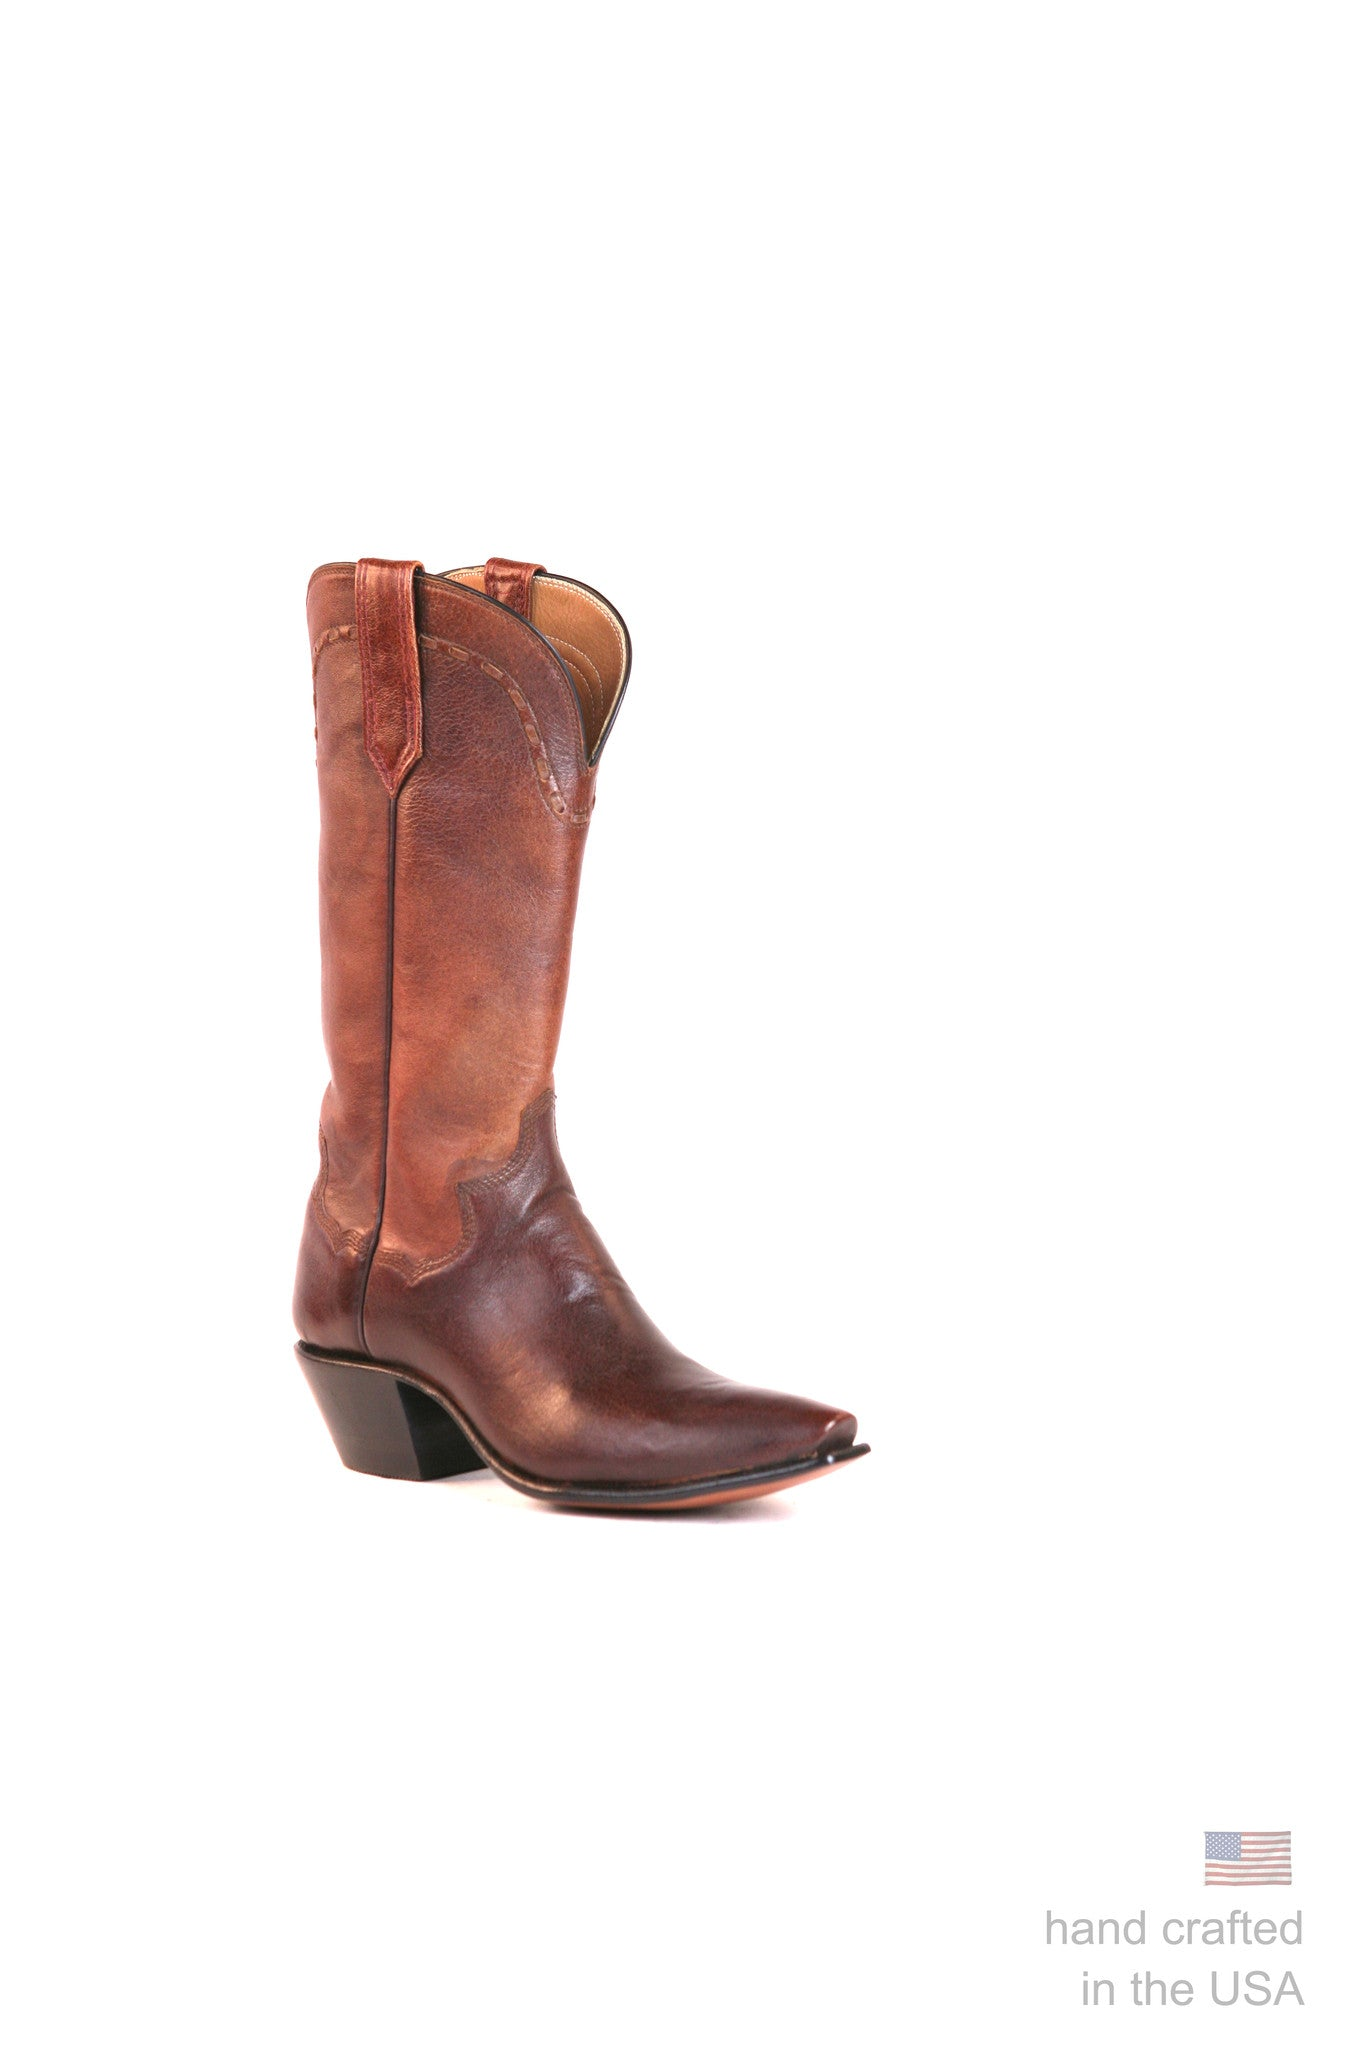 Singles: Boot 0021: Size 5B